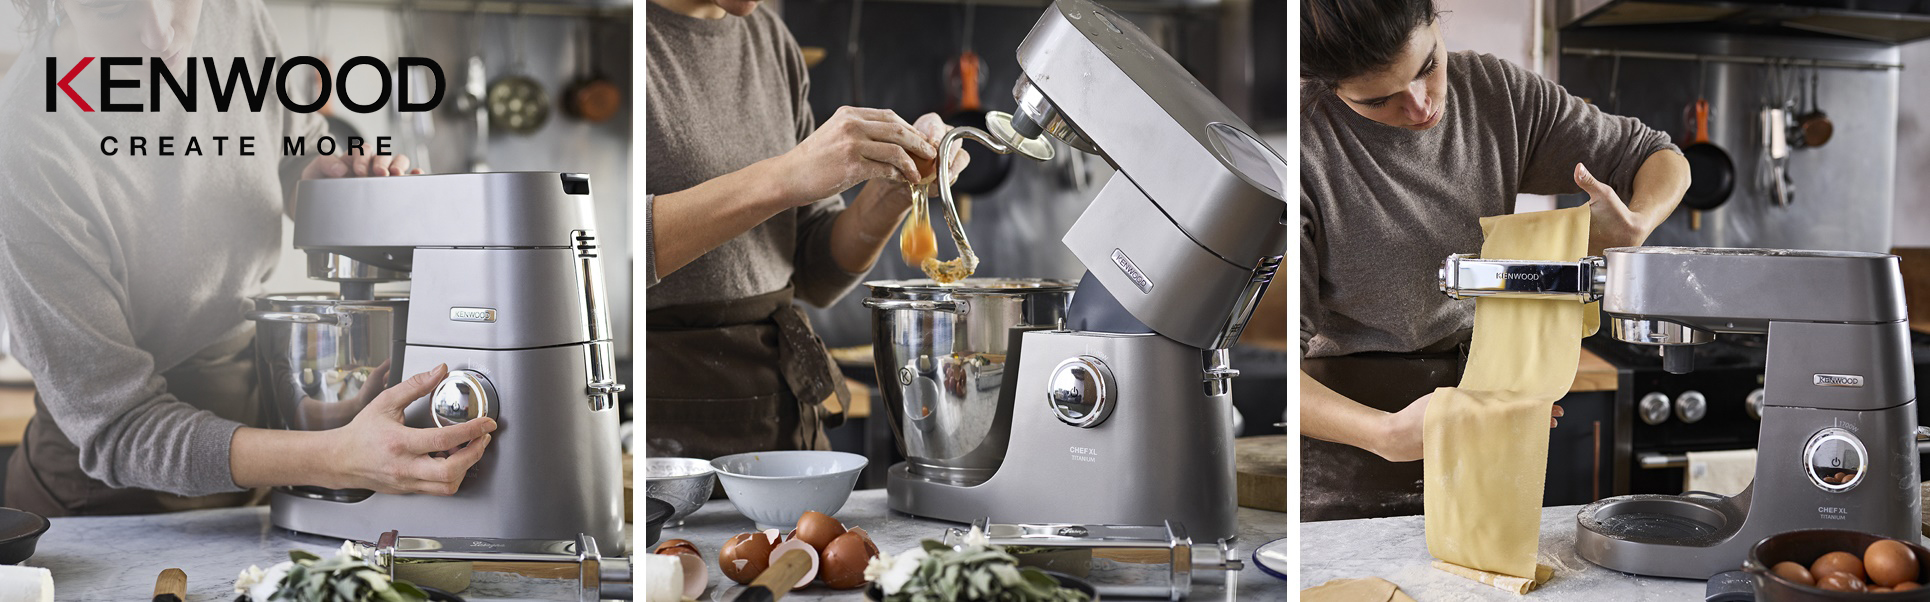 Kenwood Chef XL, KVL8430S